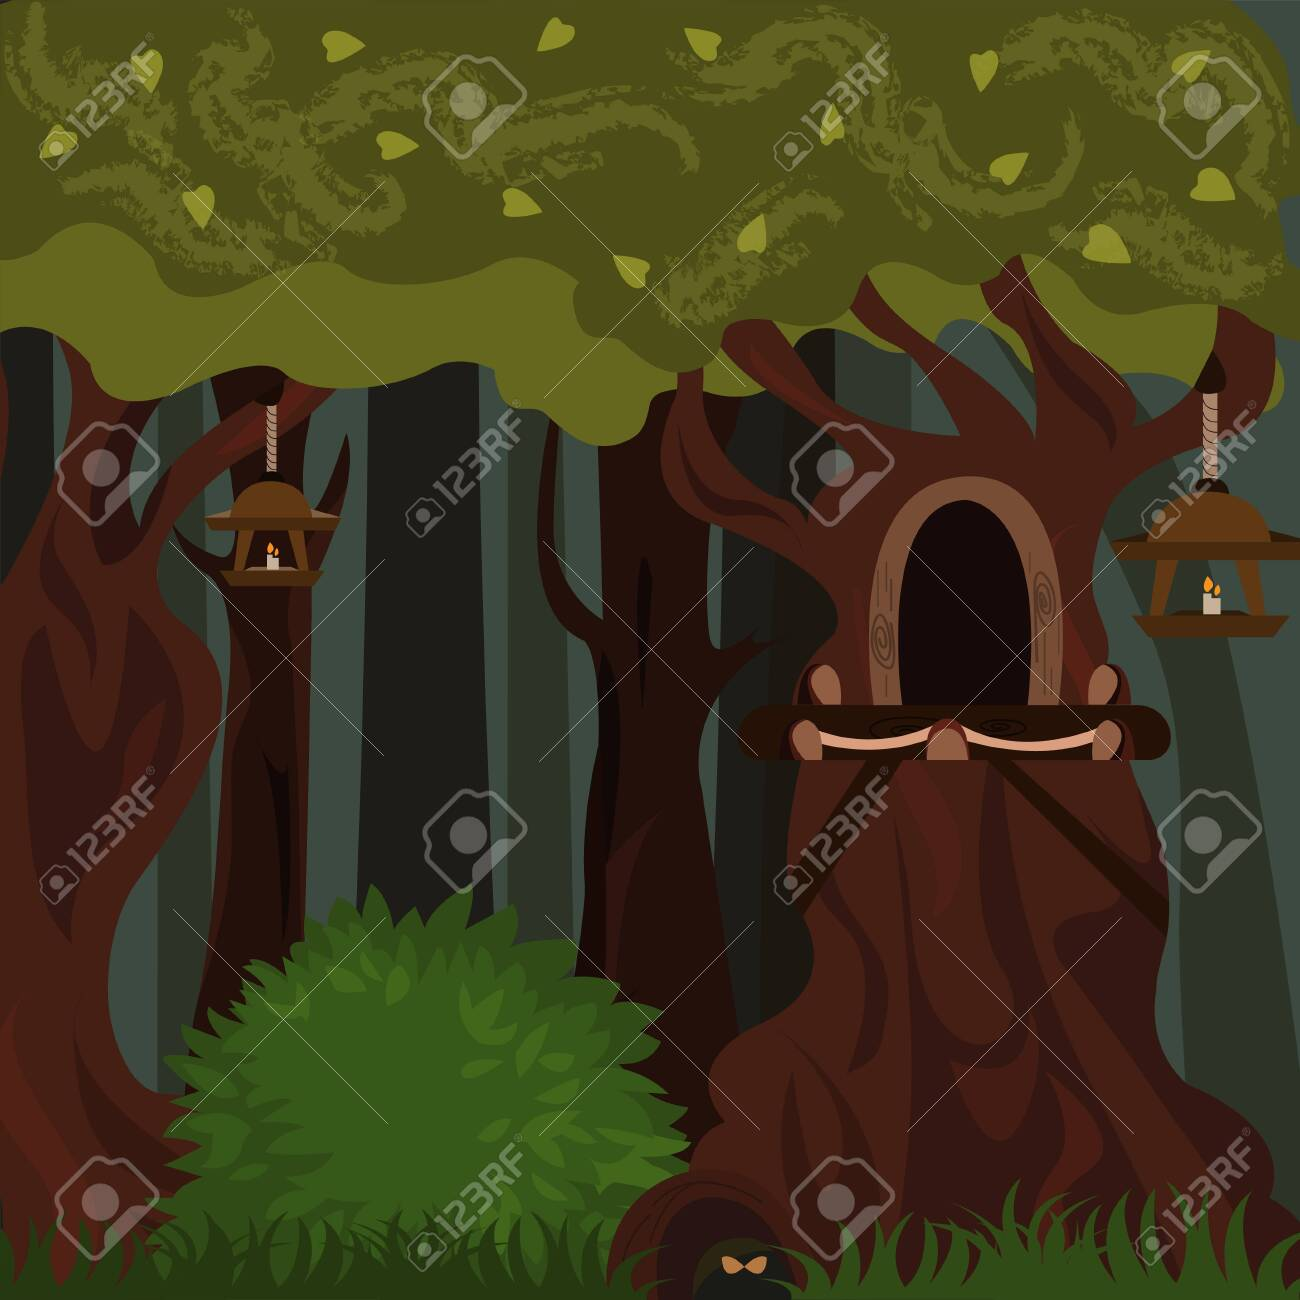 Dark Forest Lanterns And Hollow In The Mole Trees In The Hole Royalty Free Cliparts Vectors And Stock Illustration Image 151447087 Cartoon movies jurassic bark online for free in hd. dark forest lanterns and hollow in the mole trees in the hole